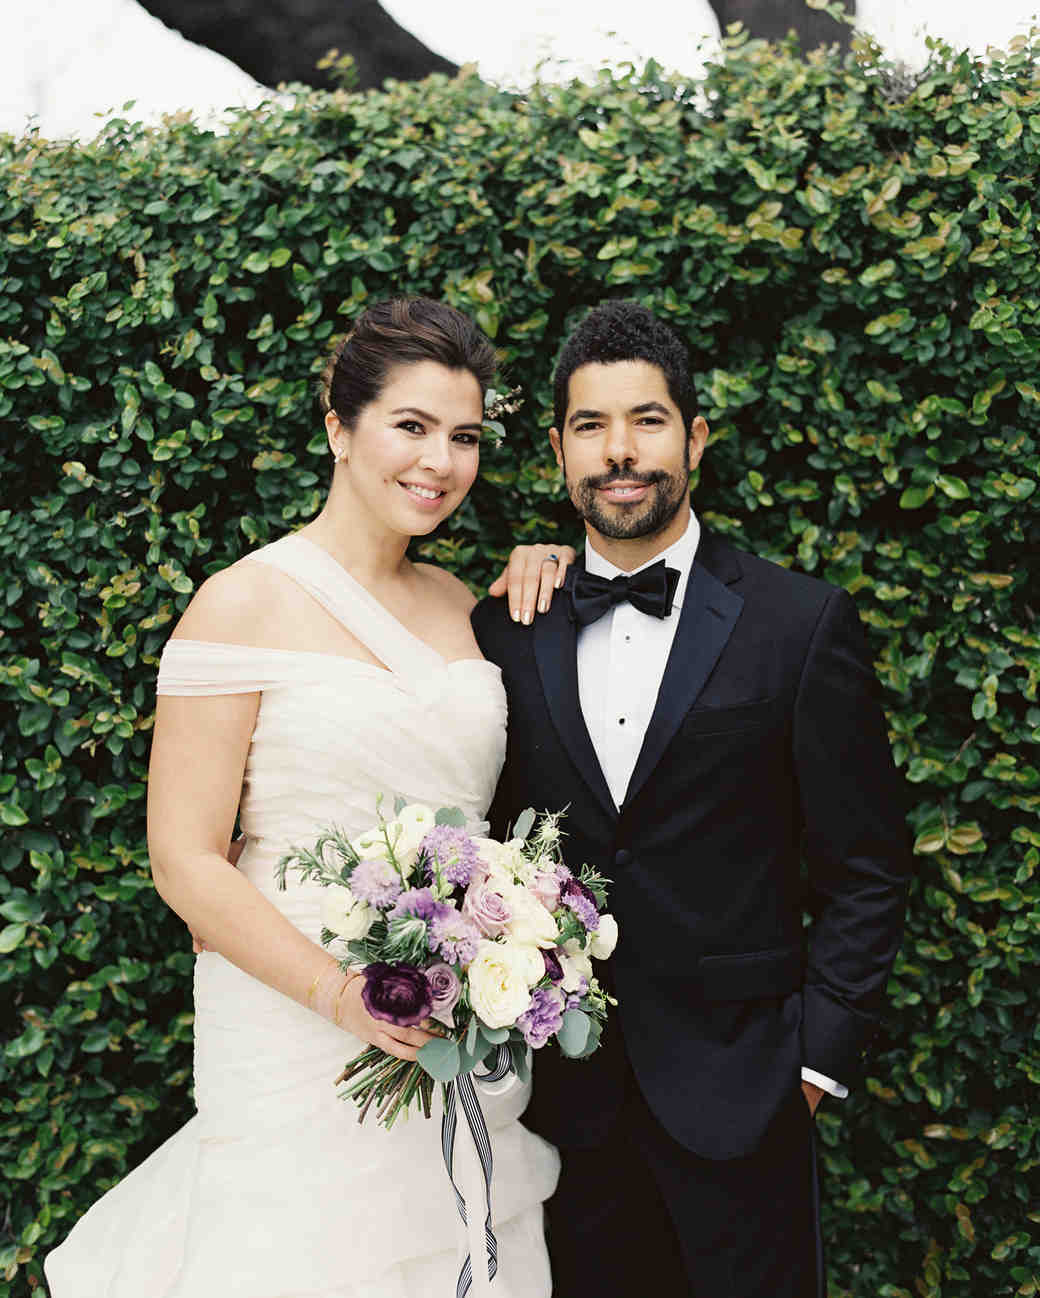 stacey-adam-wedding-couple-0032-s112112-0815.jpg